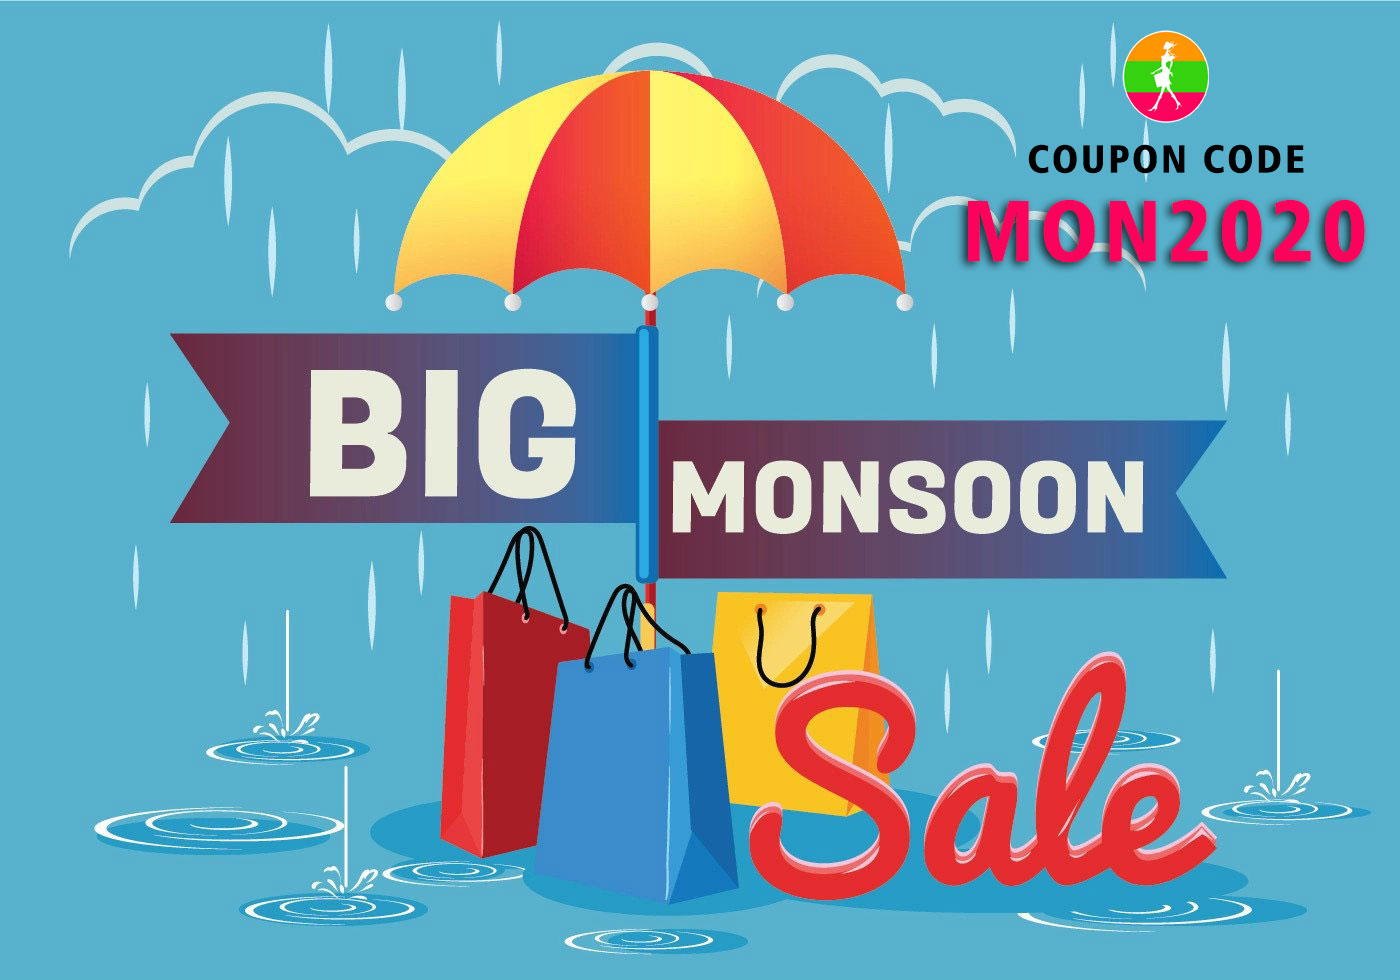 Monsoon-sale-2020-oyekudiye